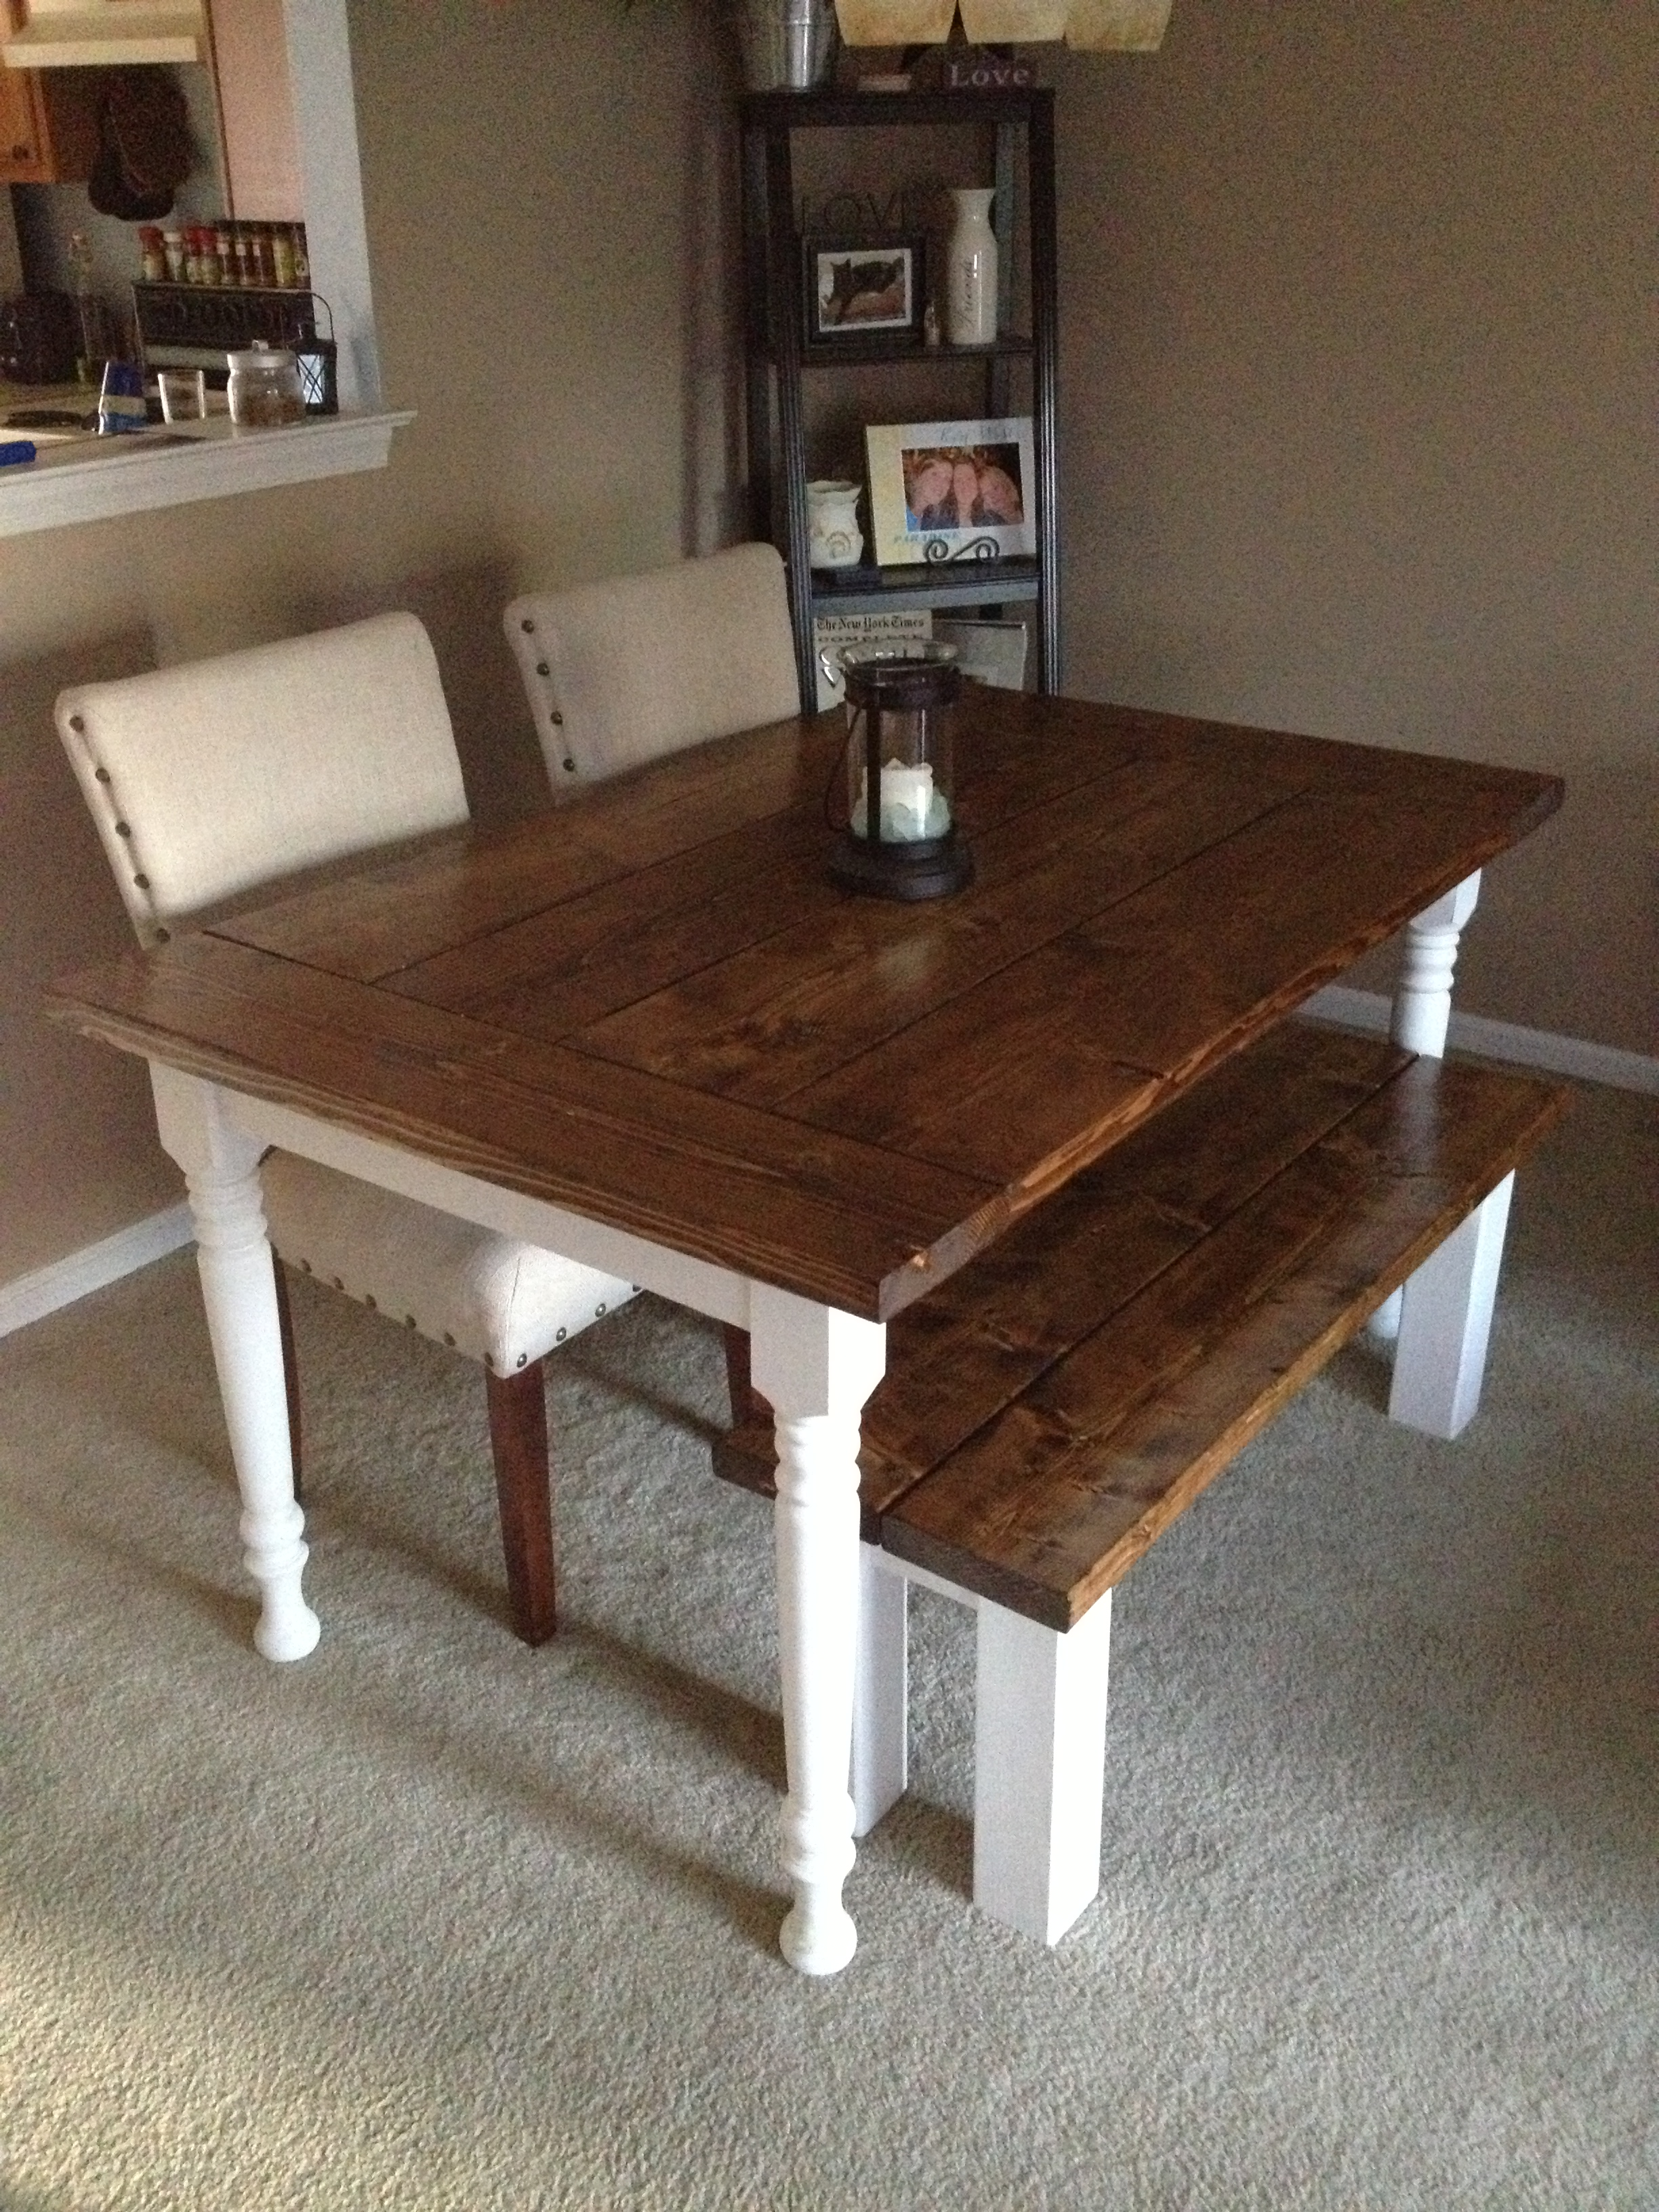 #3F2A1F Ana White Dining Room Table DIY Projects with 2448x3264 px of Recommended White Dining Room Bench 32642448 save image @ avoidforclosure.info